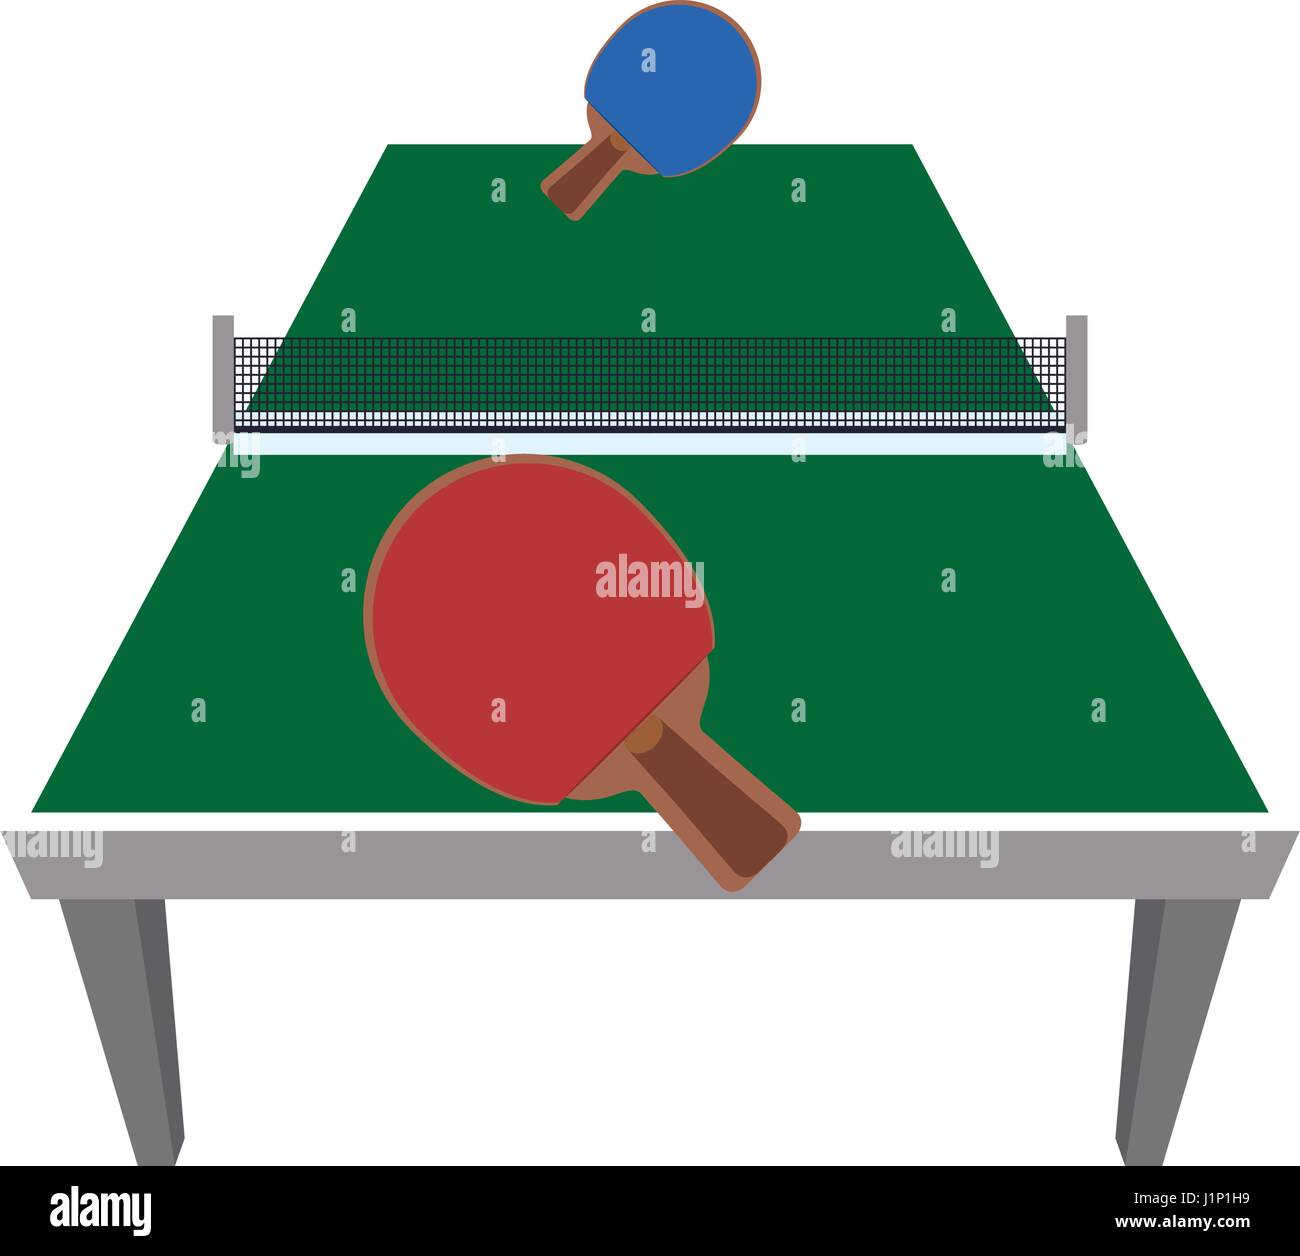 table tennis game stock photos table tennis game stock images alamy. Black Bedroom Furniture Sets. Home Design Ideas